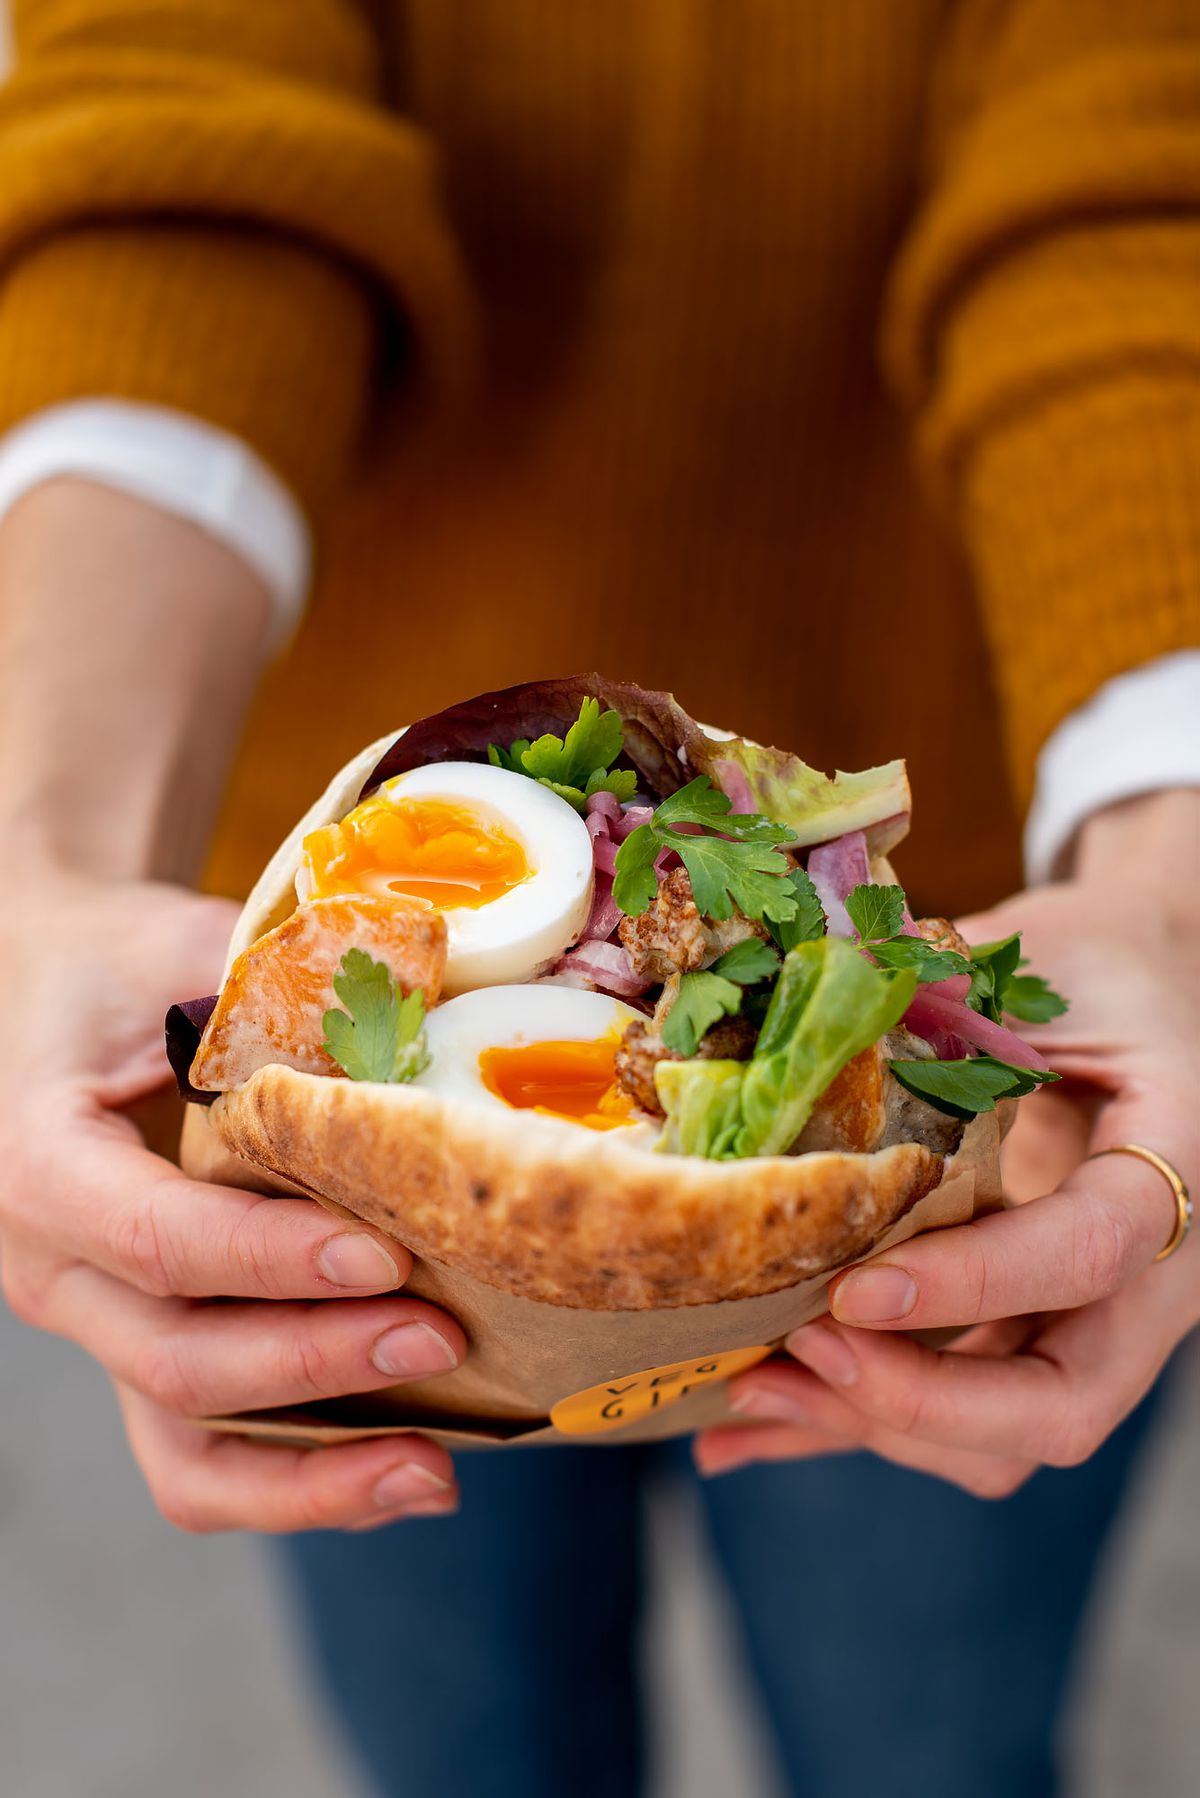 An open pita sandwich with soft eggs and greens inside.